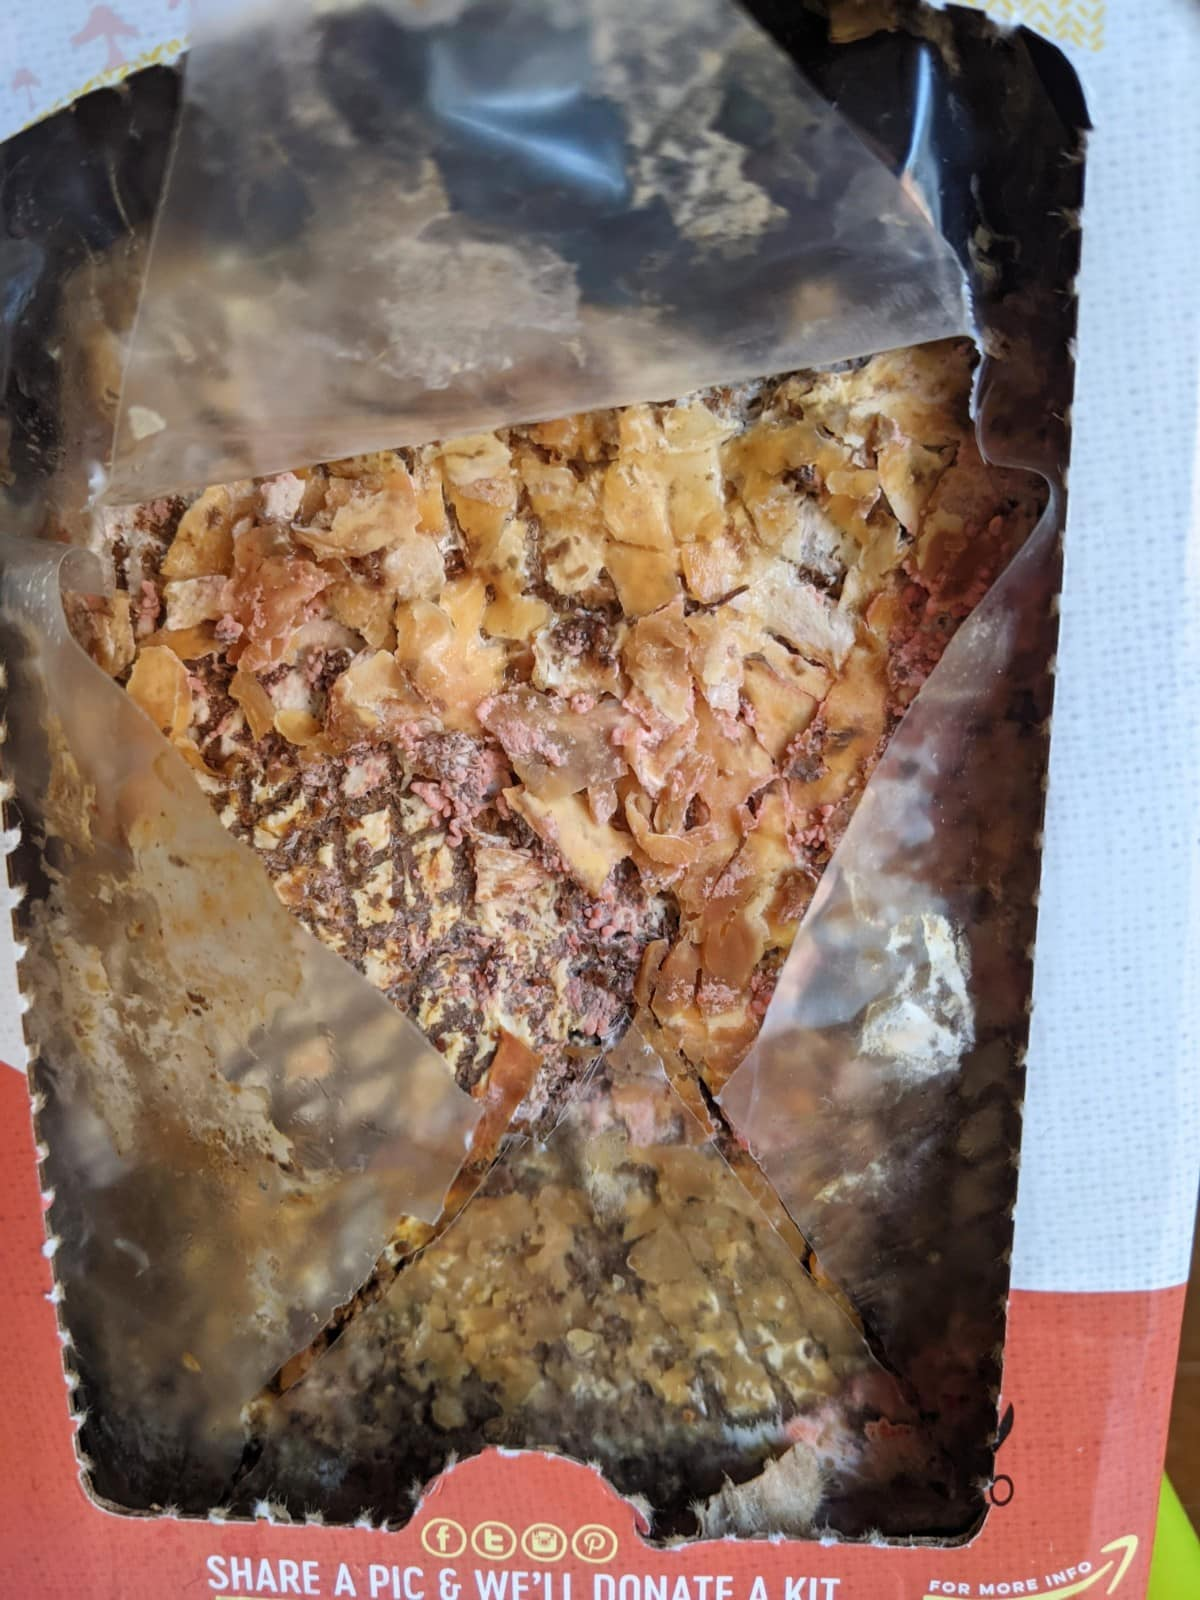 Day 1 of the Back to the Roots pink oyster mushroom kit, with tiny pink dots that look like mold